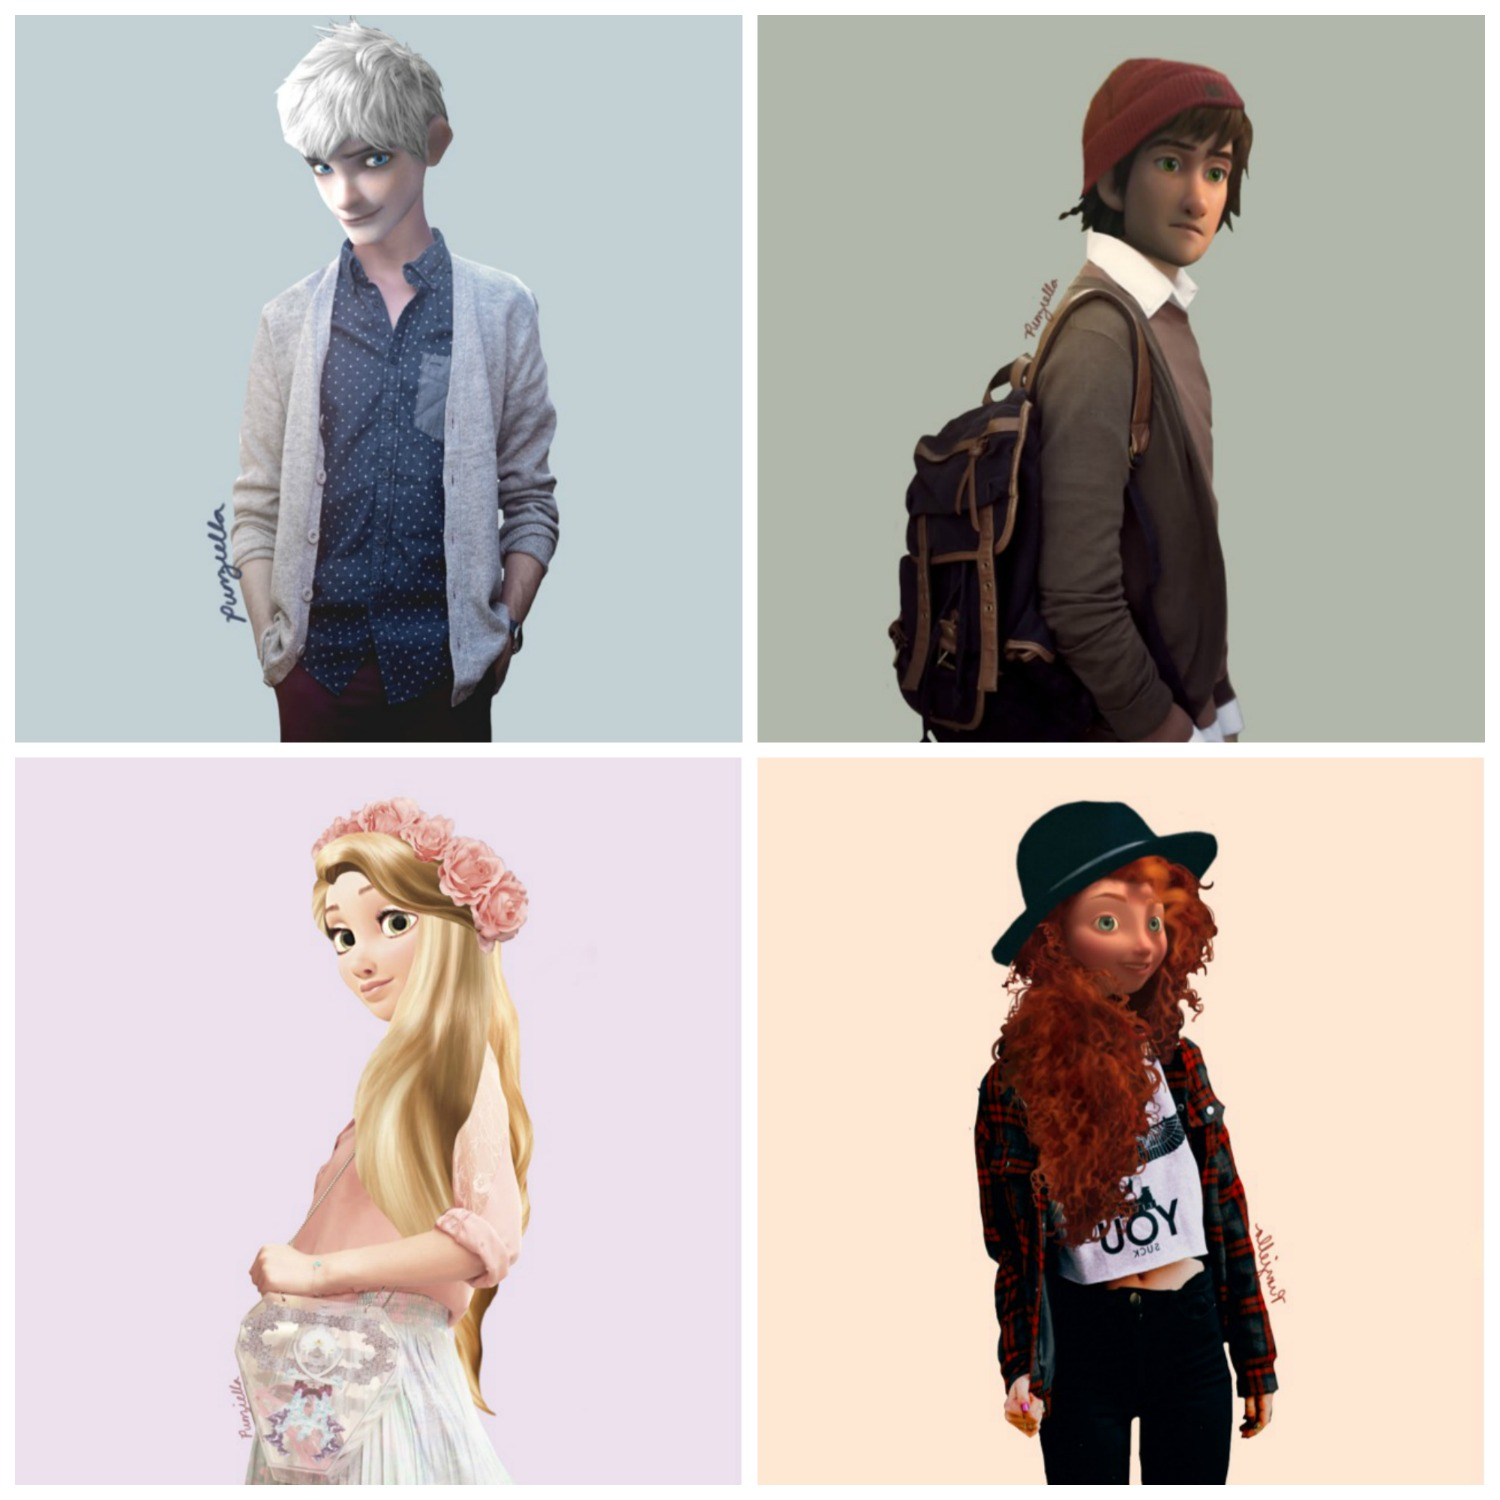 Jack Frost from Rise of the Guardians, Hiccup from How to Train Your Dragon, Rapunzel from Tangled,  Merida from Brave